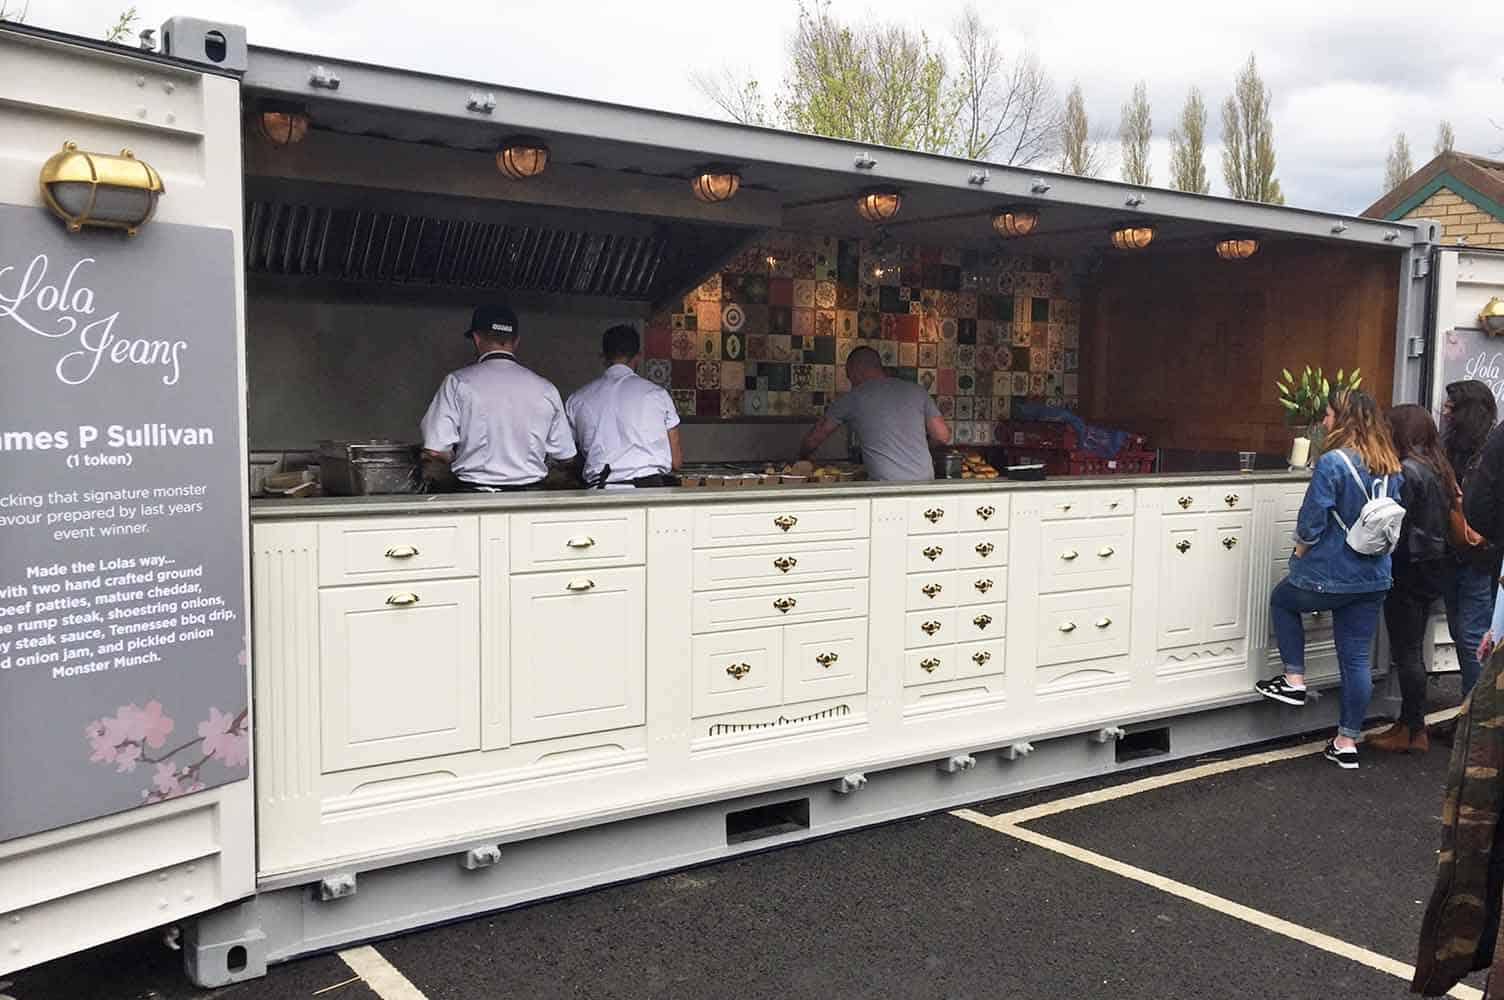 Lola Jeans Mobile Catering